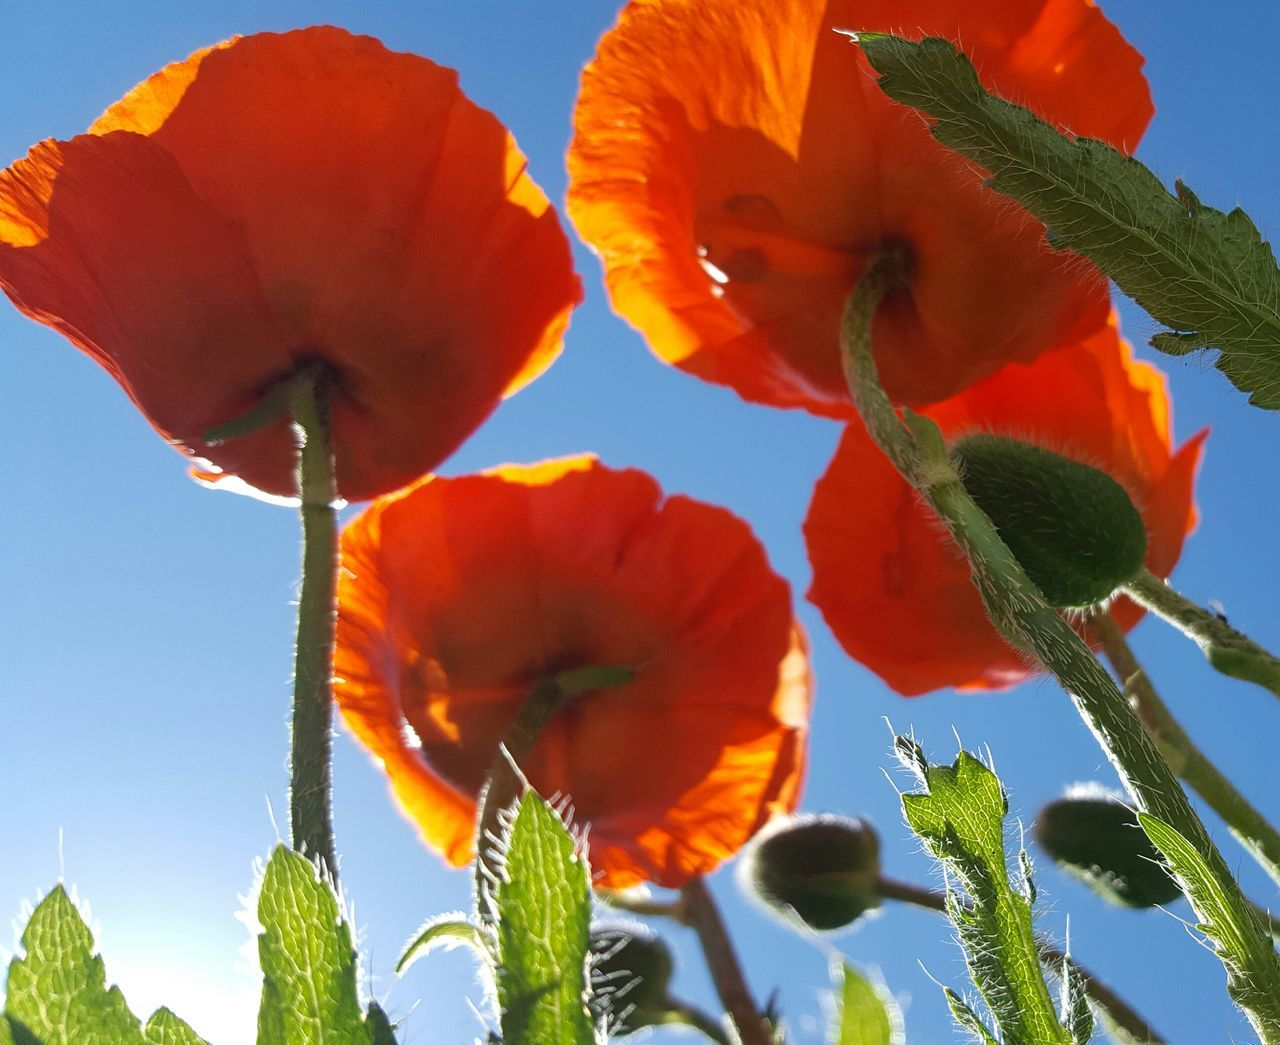 Plant Nature No People Flower Growth Fragility Day Outdoors Animal Wildlife Red Leaf Close-up Beauty In Nature Freshness Poppy Sky Flower Head